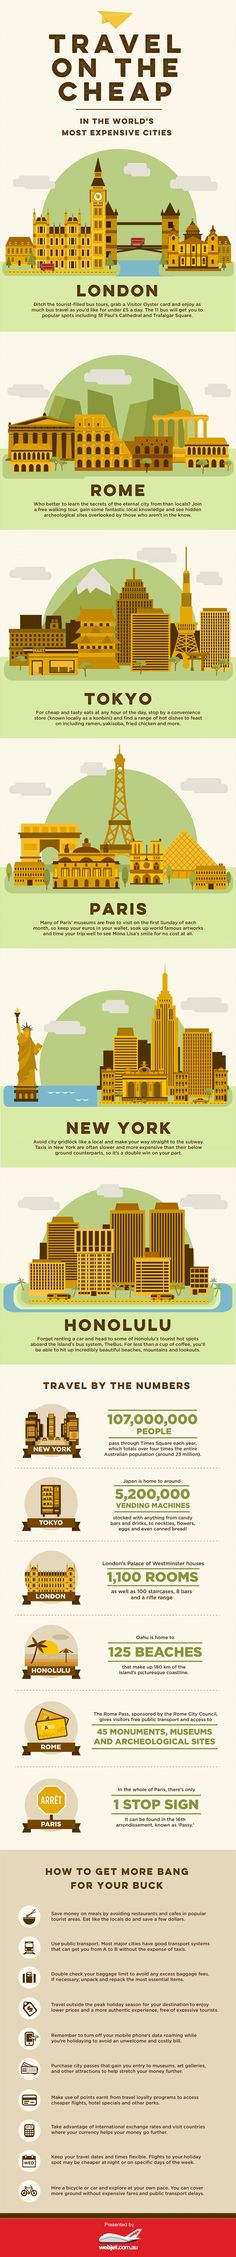 Infographic: Money Saving Hacks When Traveling In The World's Priciest Cities - DesignTAXI.com